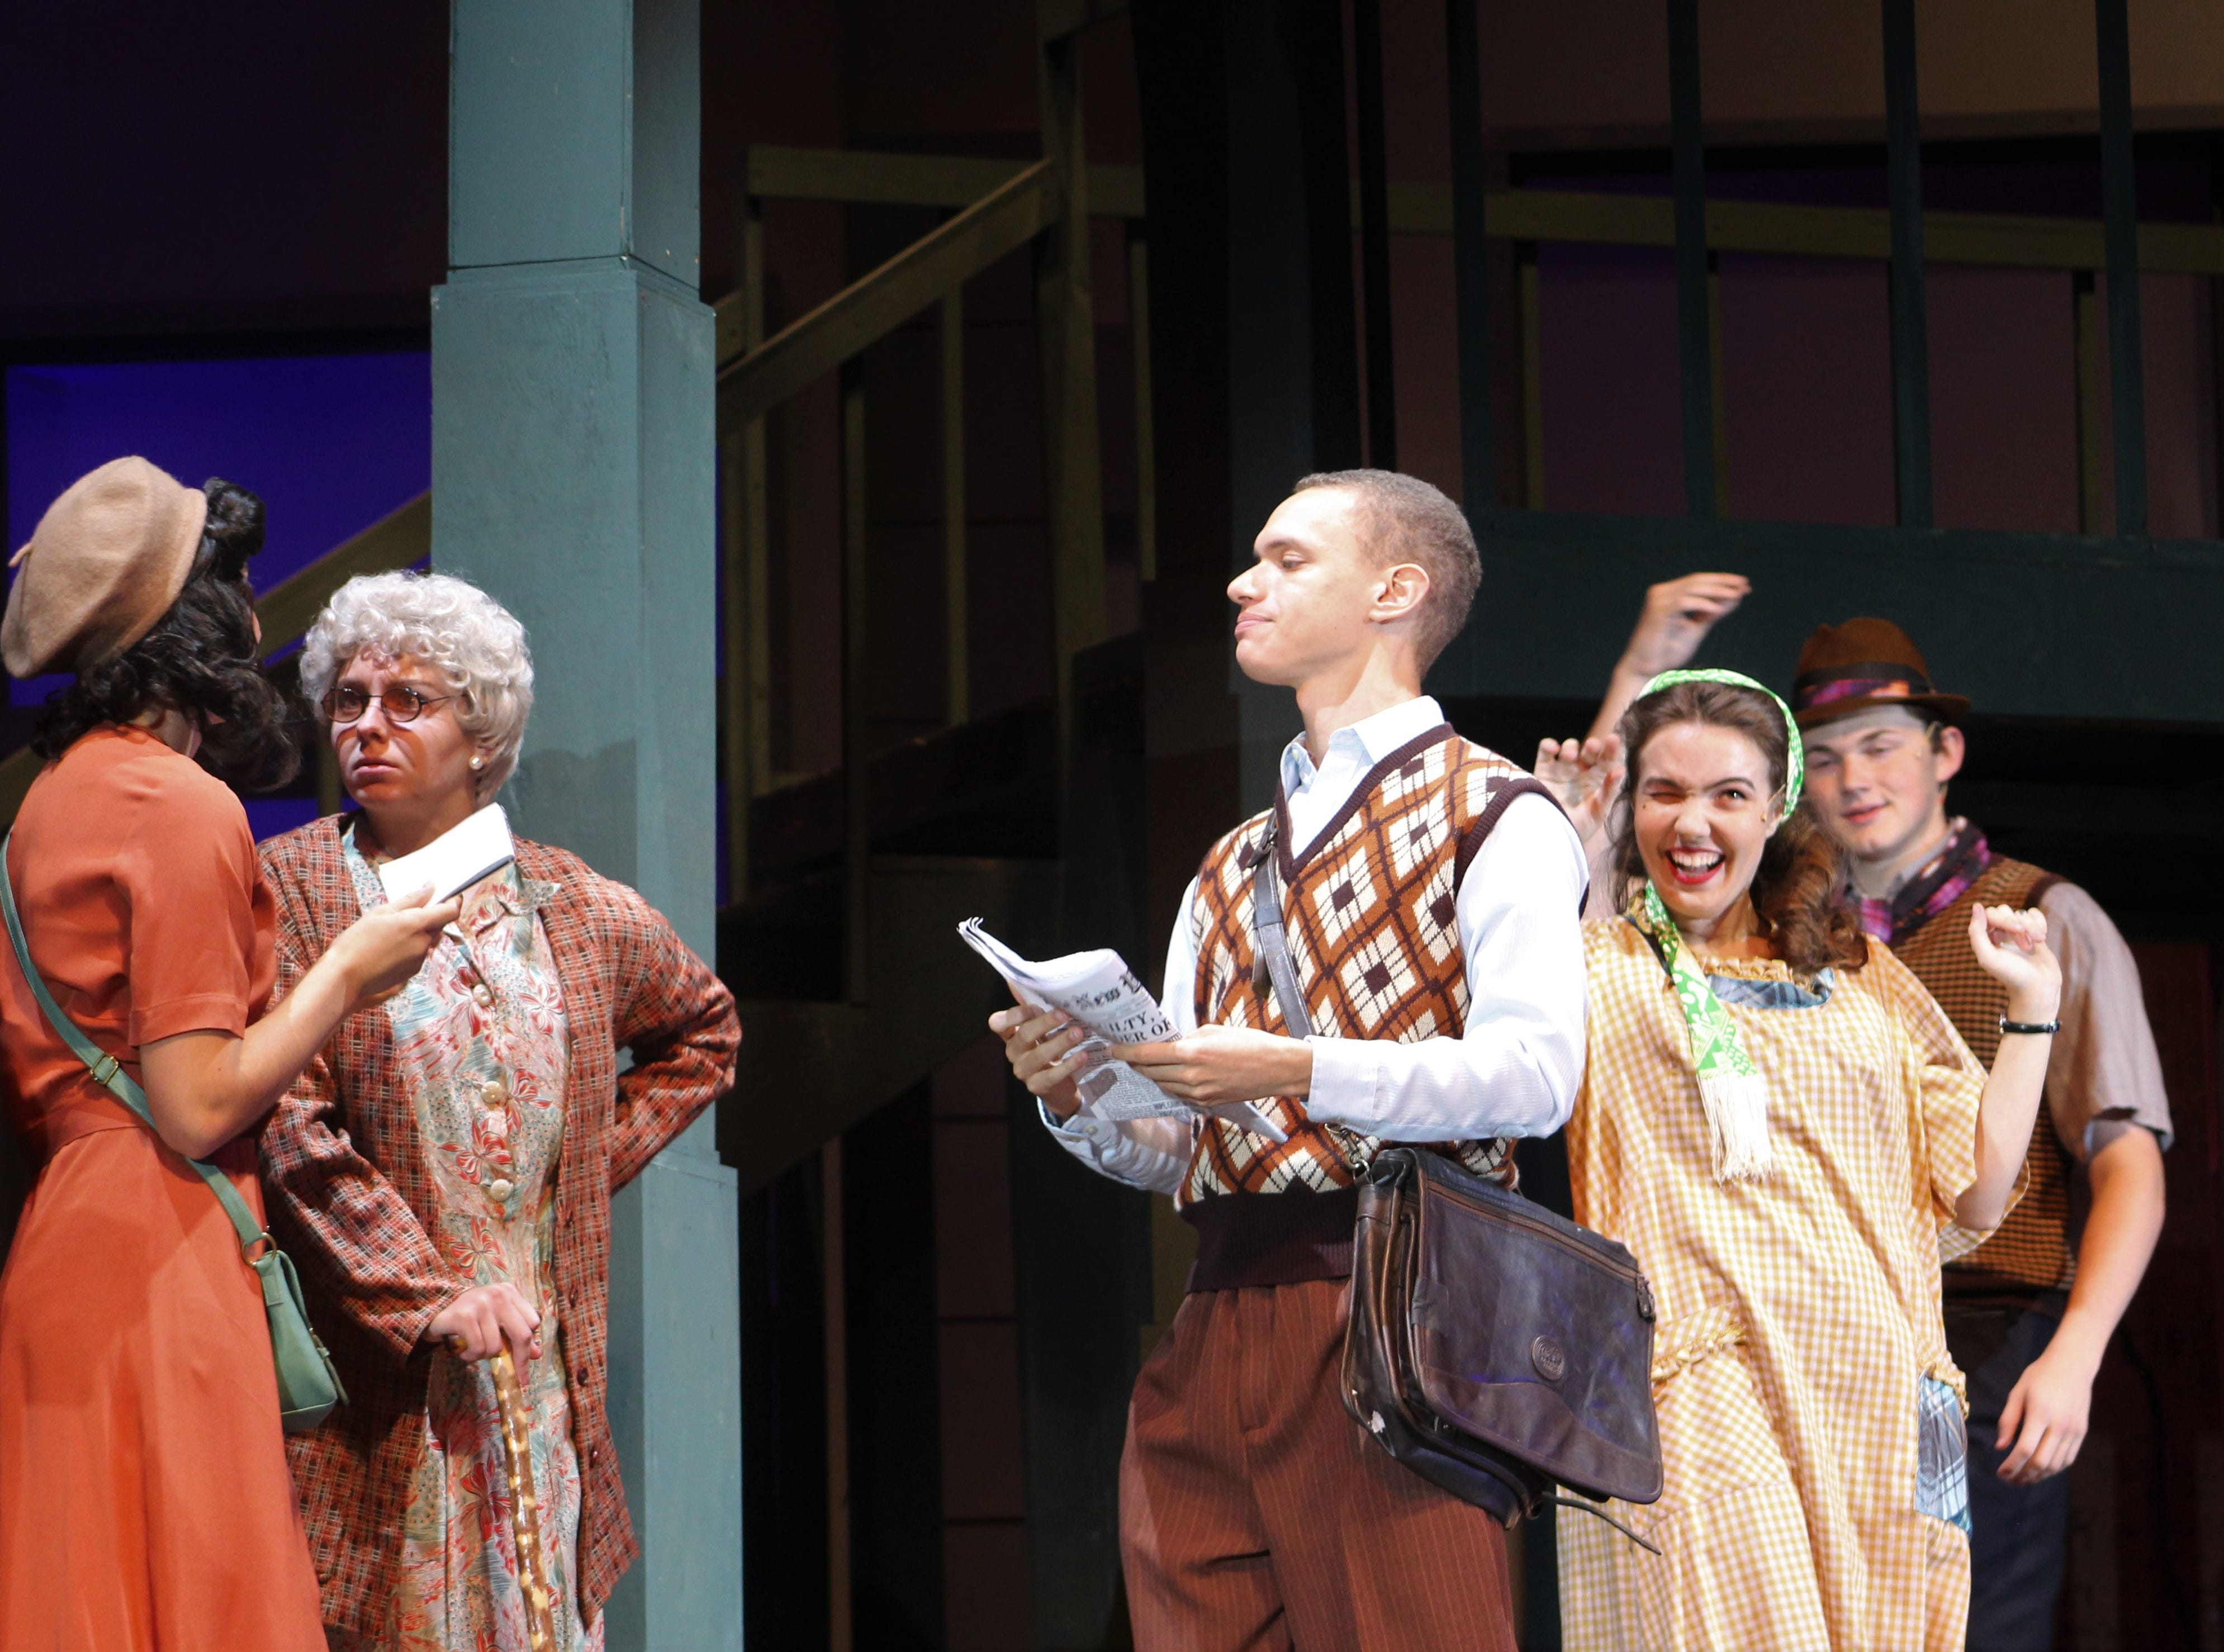 """Just another day in the life of Greenwich Villagers. Two sisters from Ohio have moved here hoping to make their way in New York City in Abilene Christian University's 2018 homecoming musical """"Wonderful Town."""""""